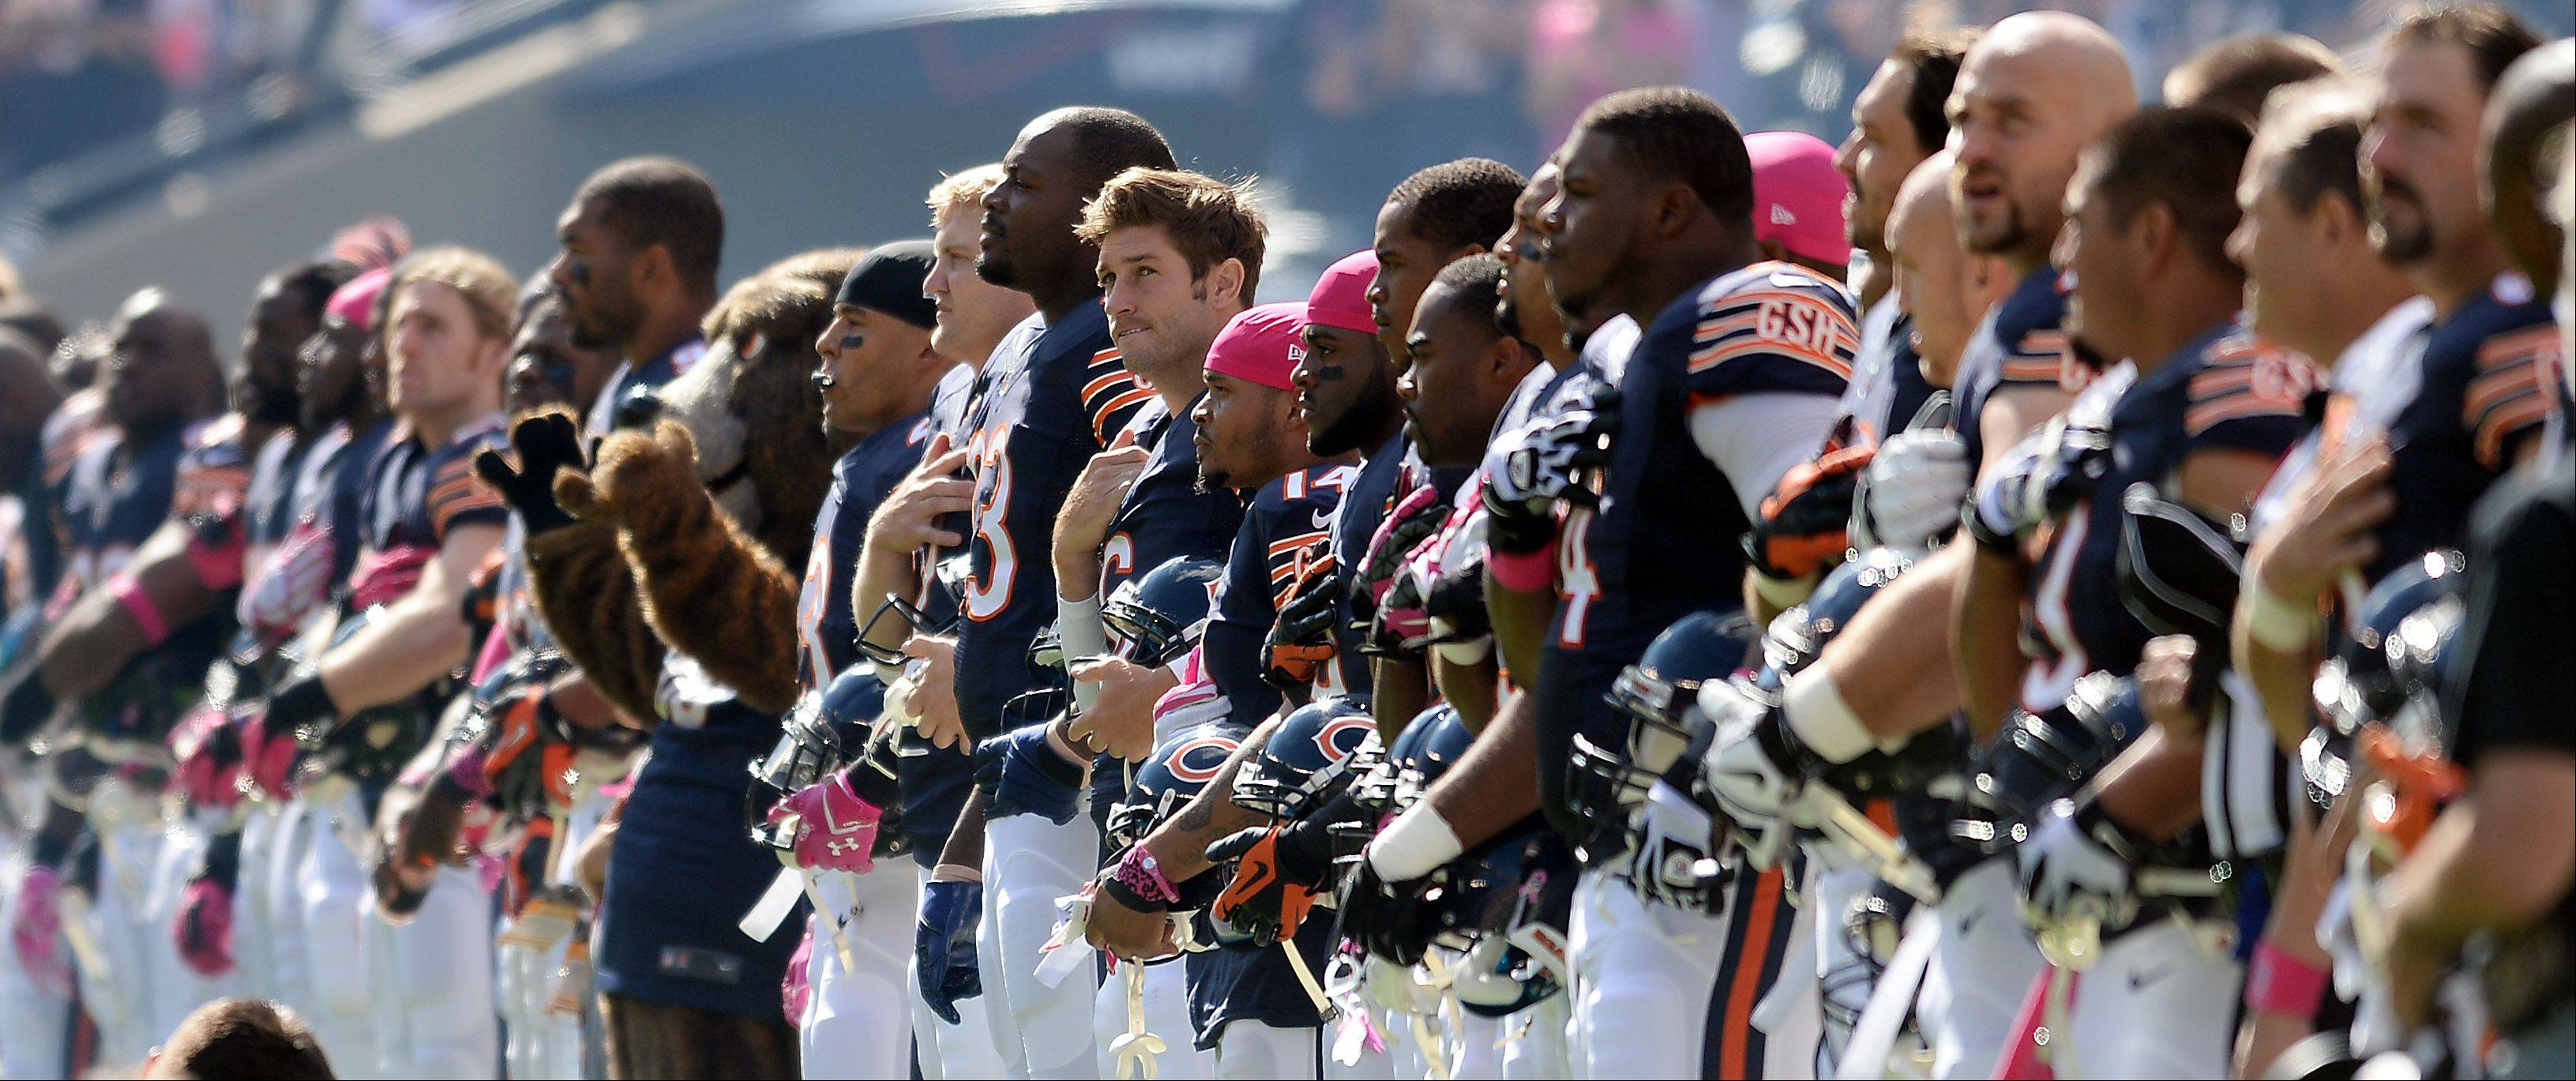 Bears quarterback Jay Cutler stands with the rest of his teammates before the game at Soldier Field as they prepare to play the Saints.